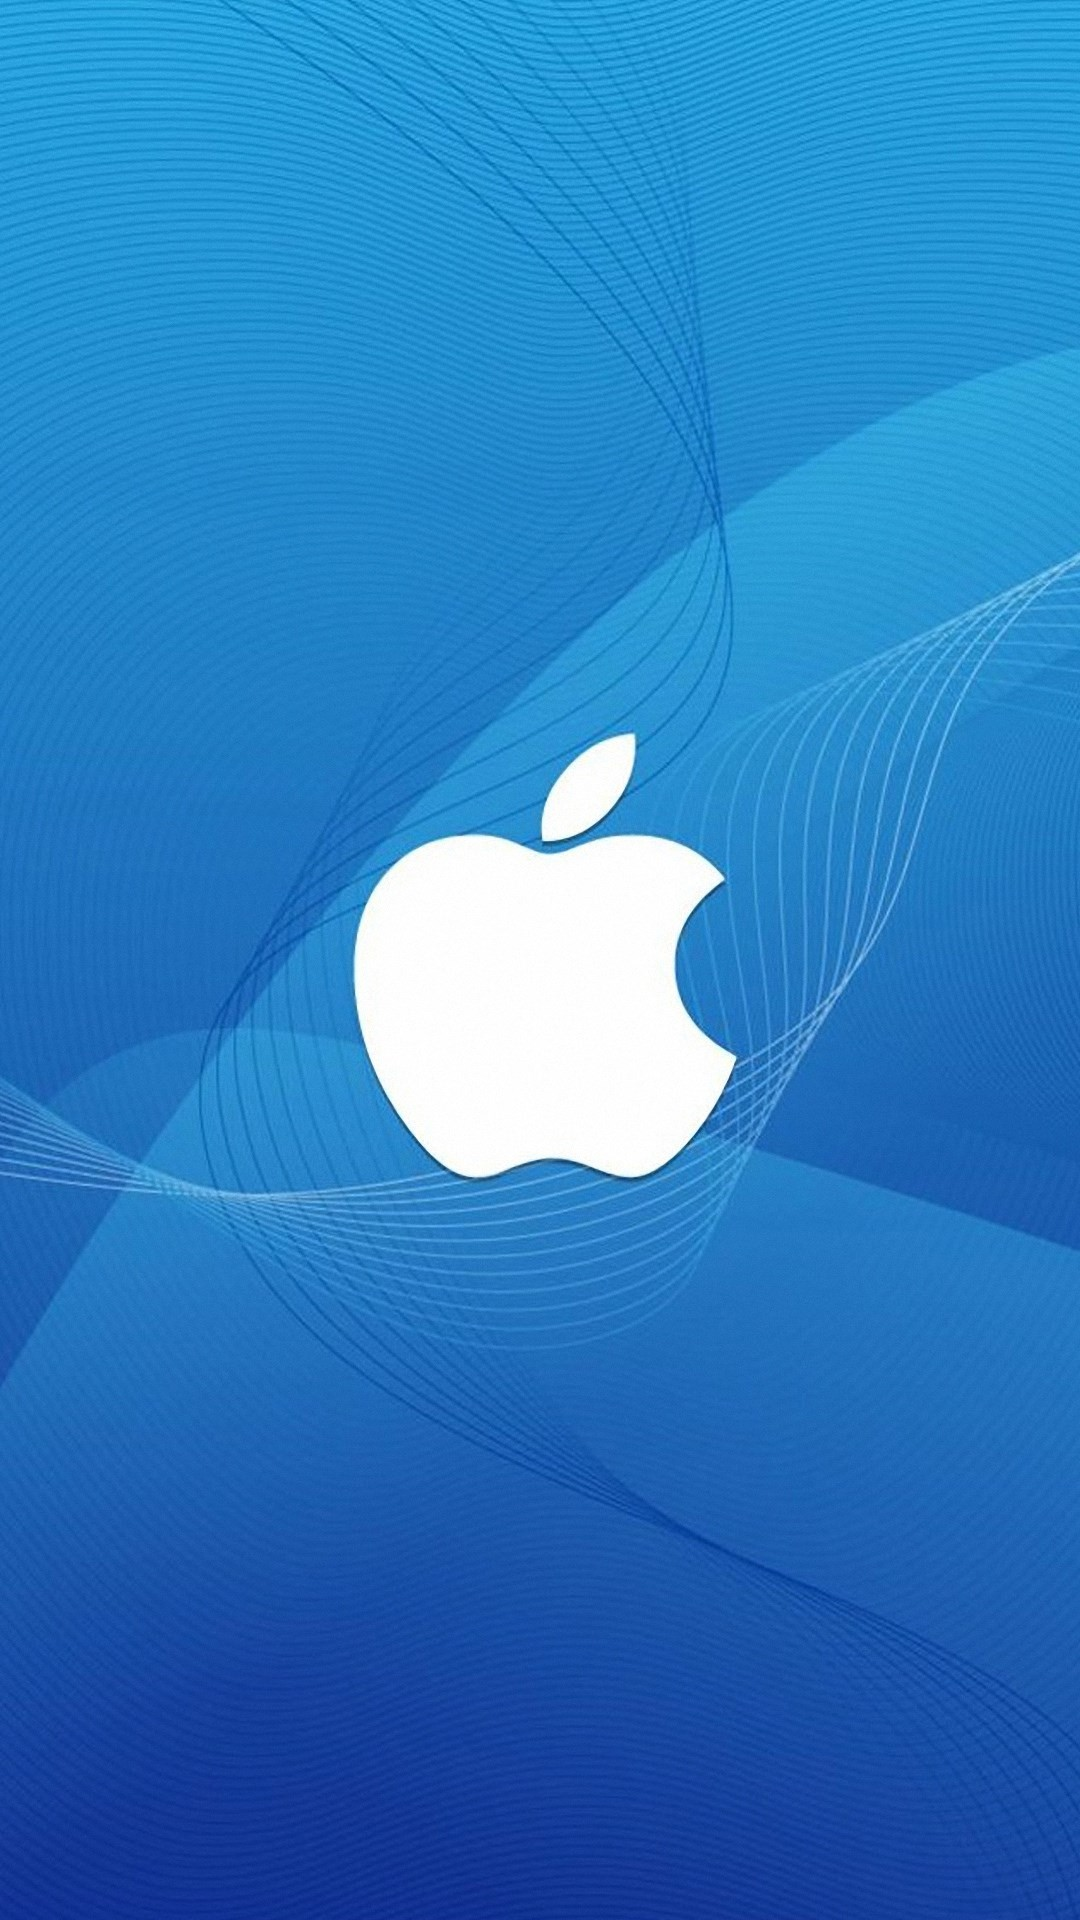 1080x1920 blue apple logo wallpaper for iphone